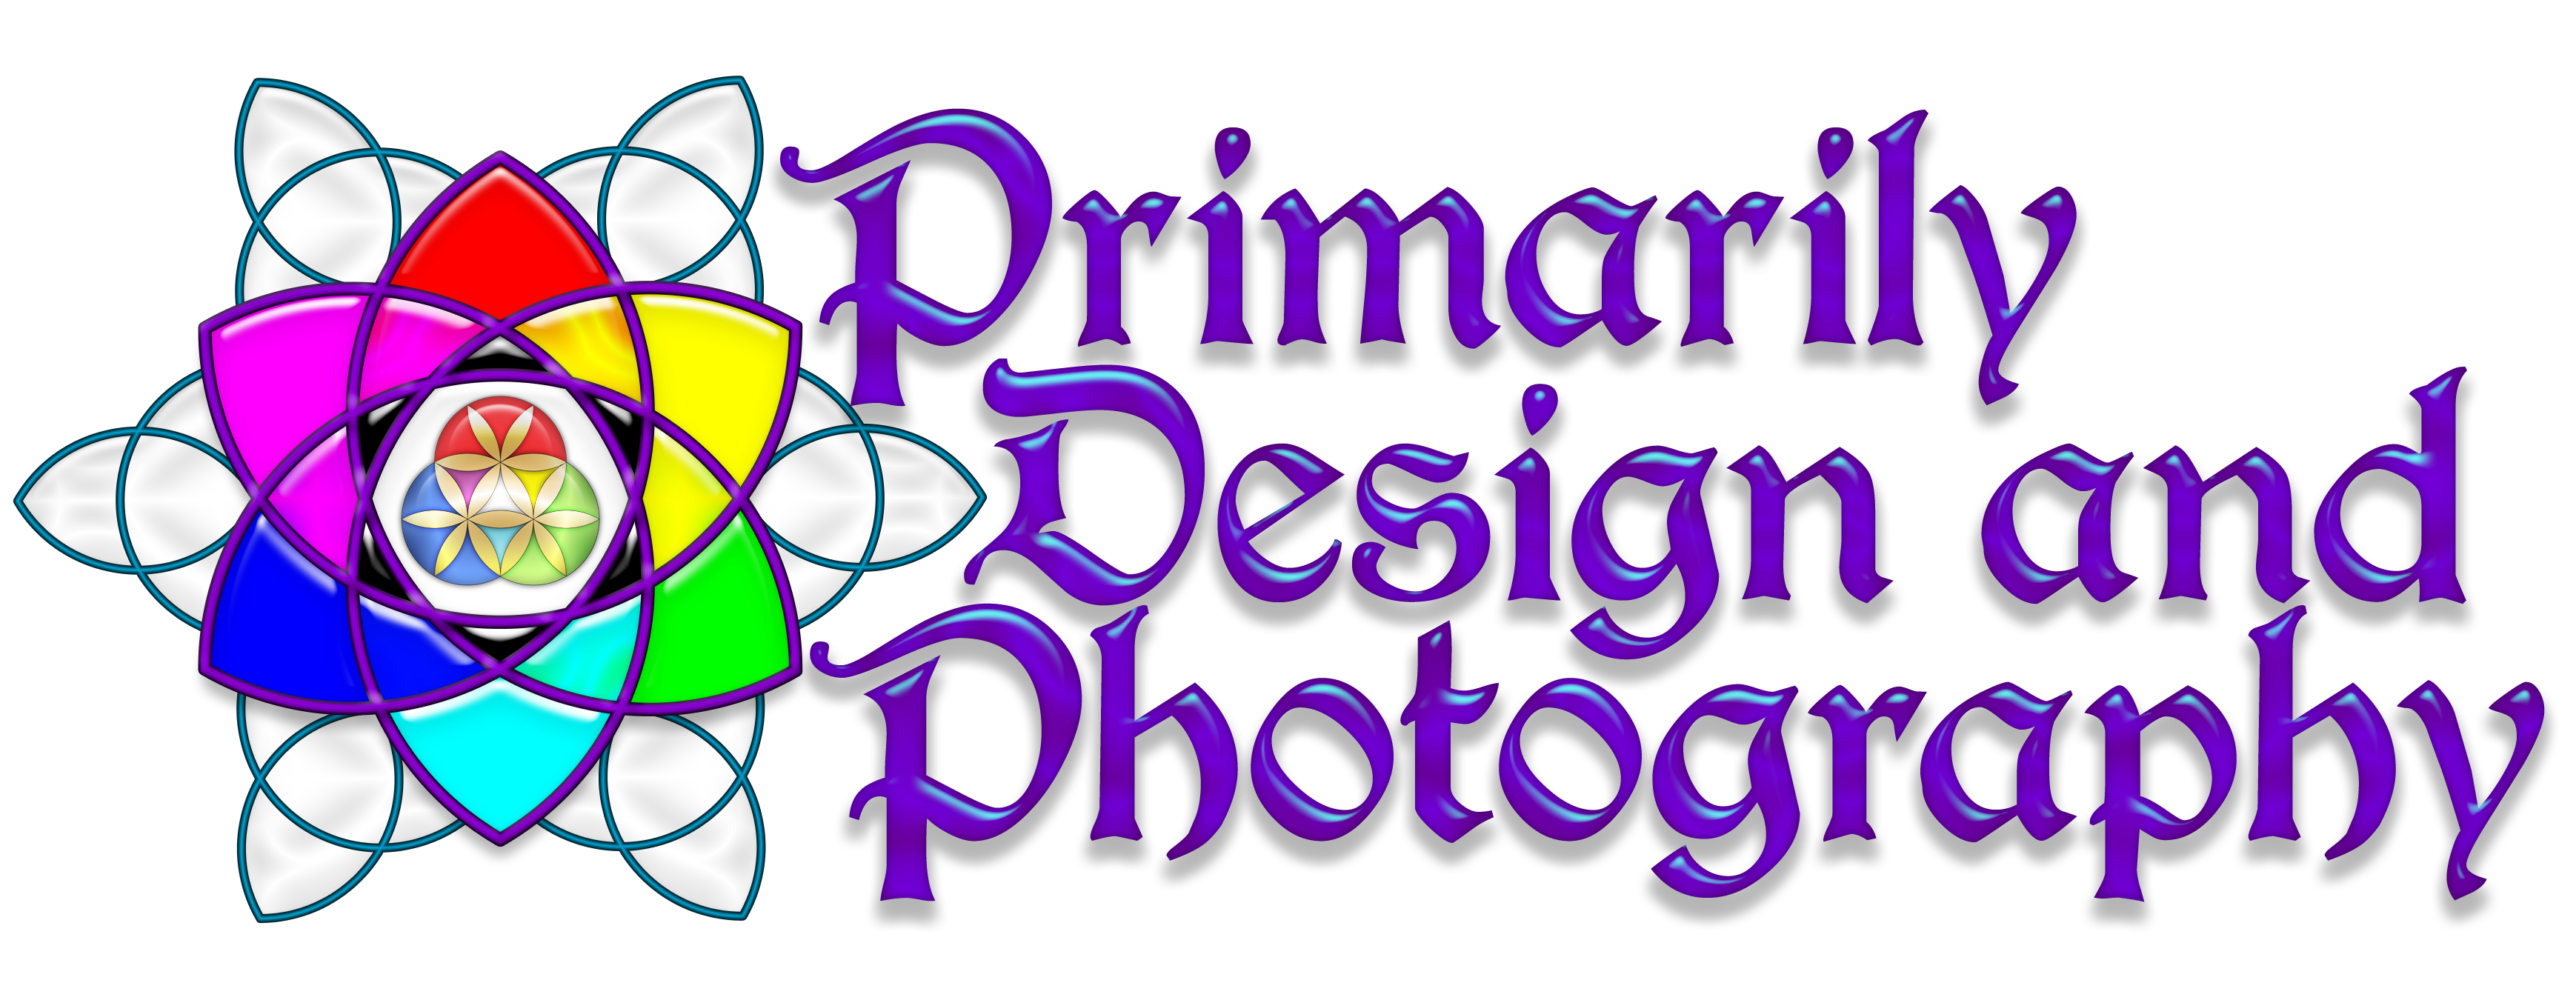 PRIMARILY DESIGN AND PHOTOGRAPHY